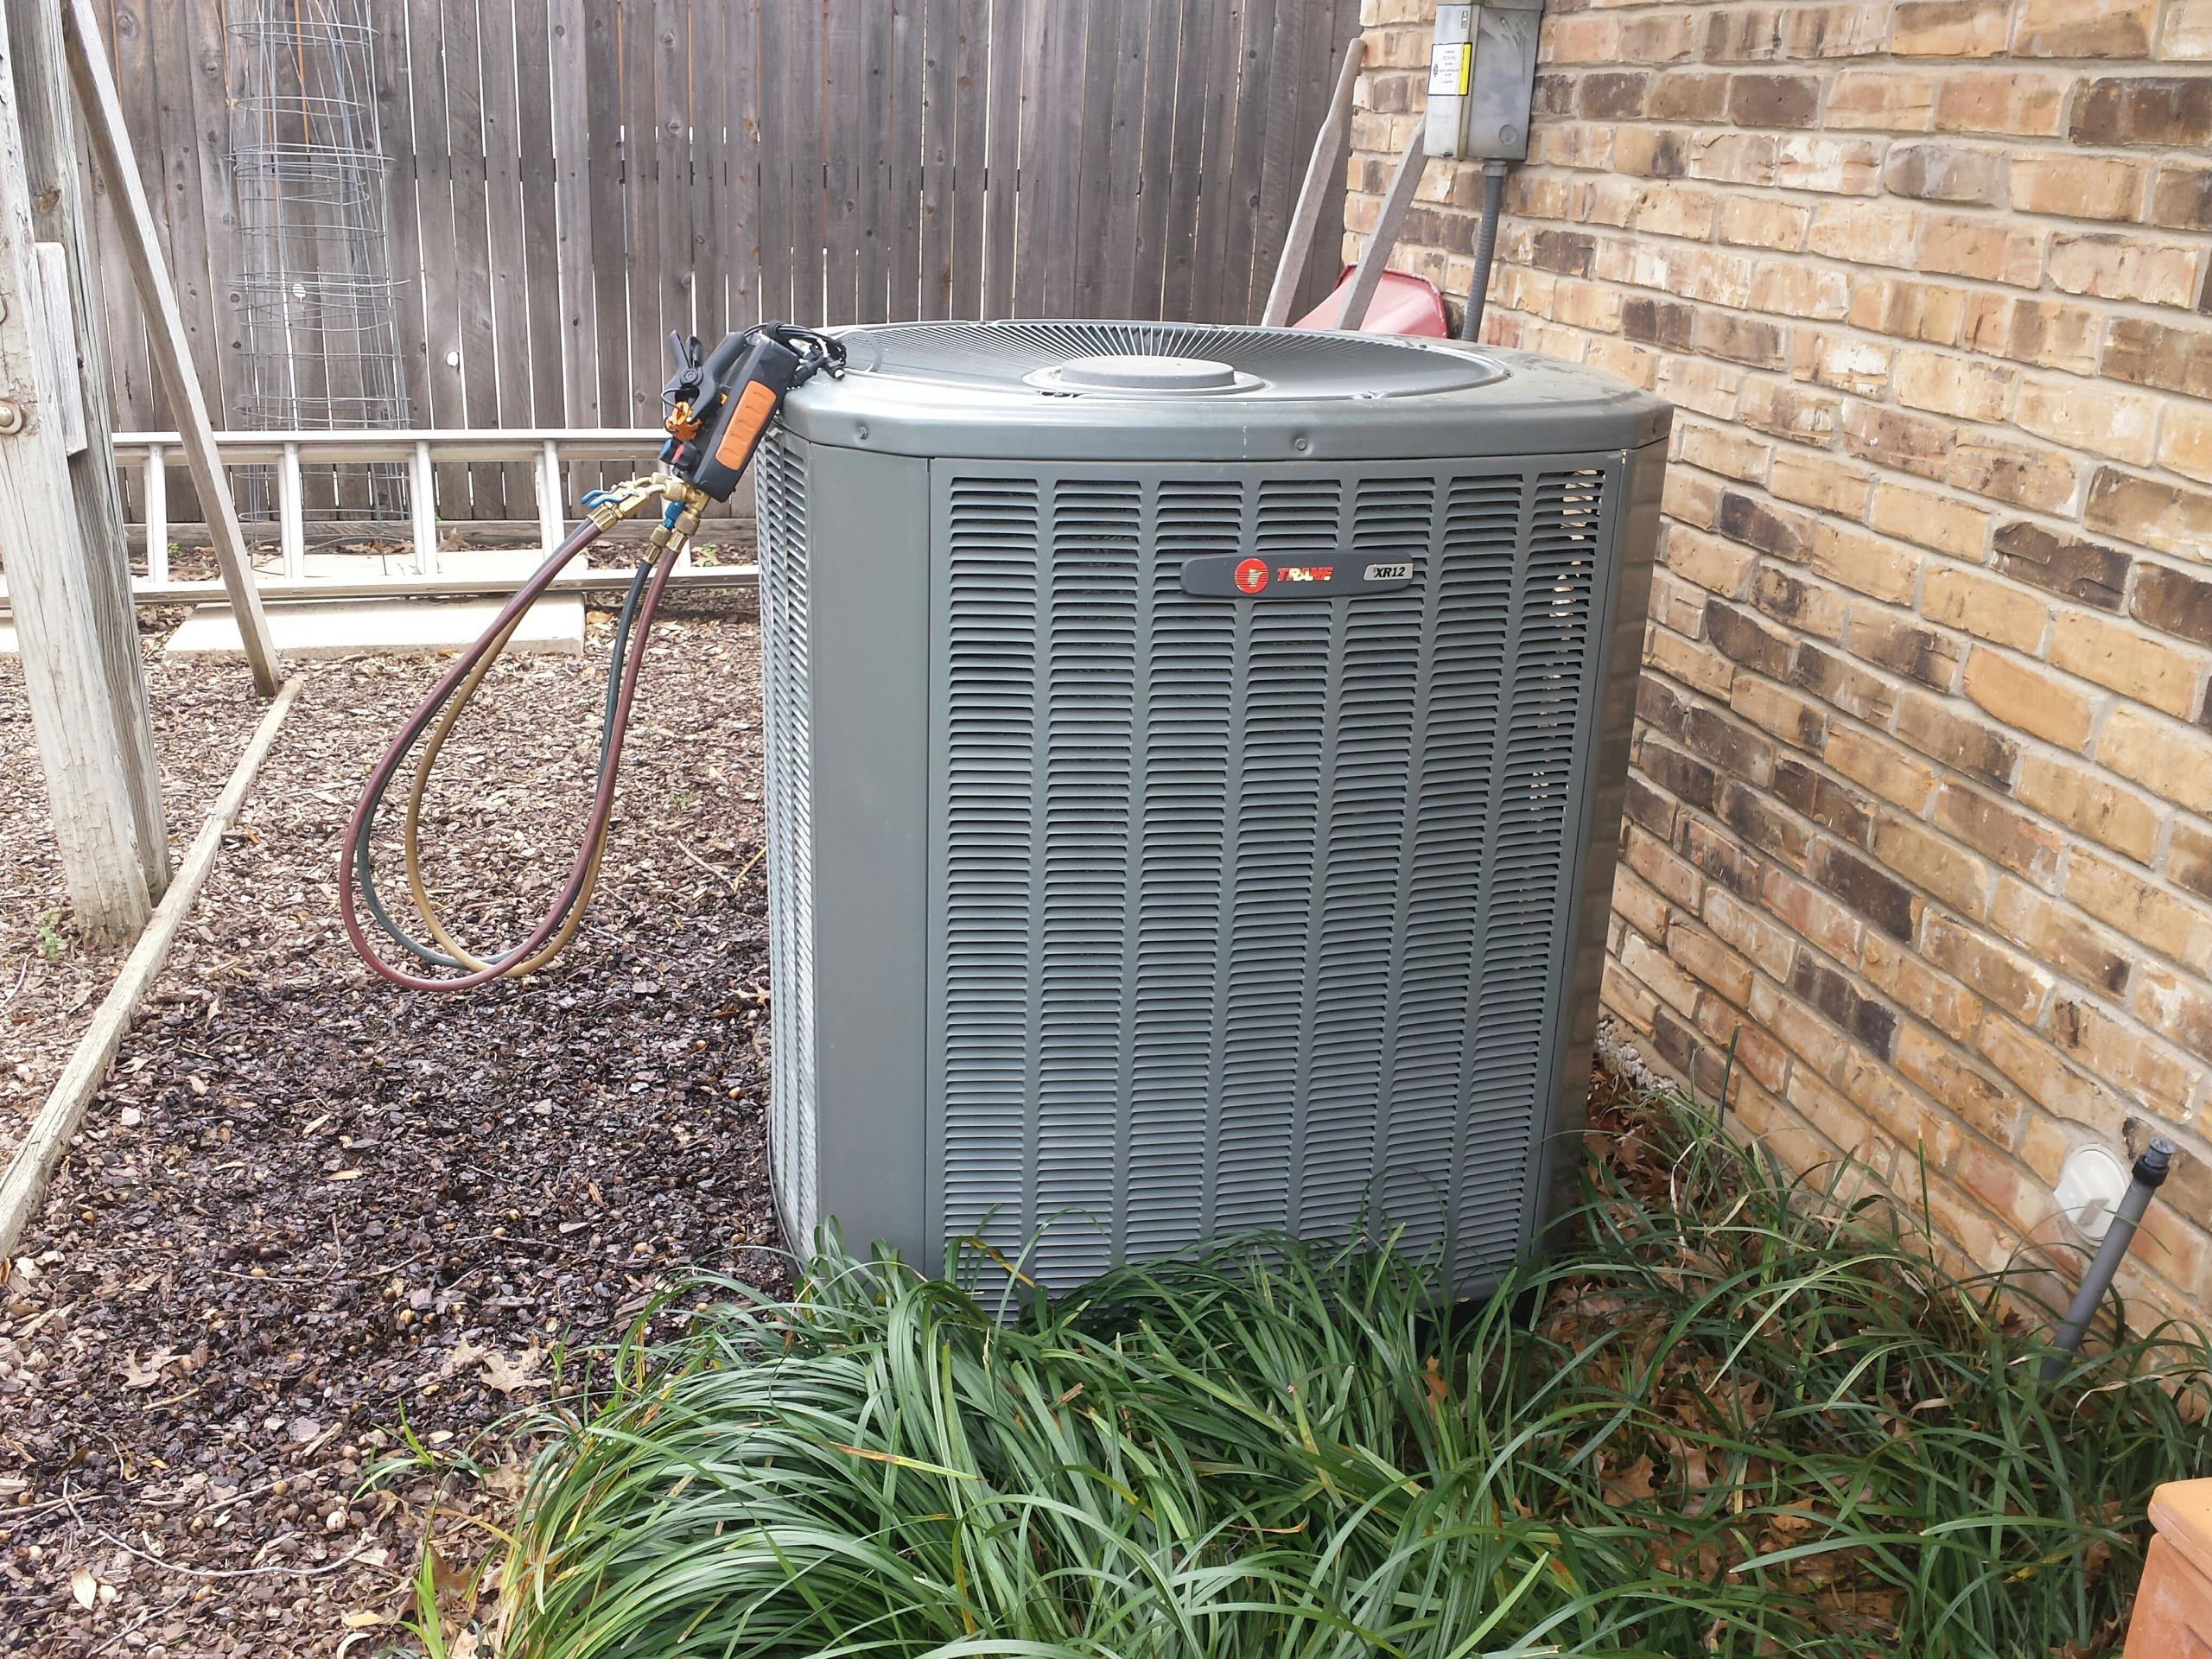 Farmers Branch, TX - Performing seasonal cooling tuneup and inspection on a TRANE air conditioning system.